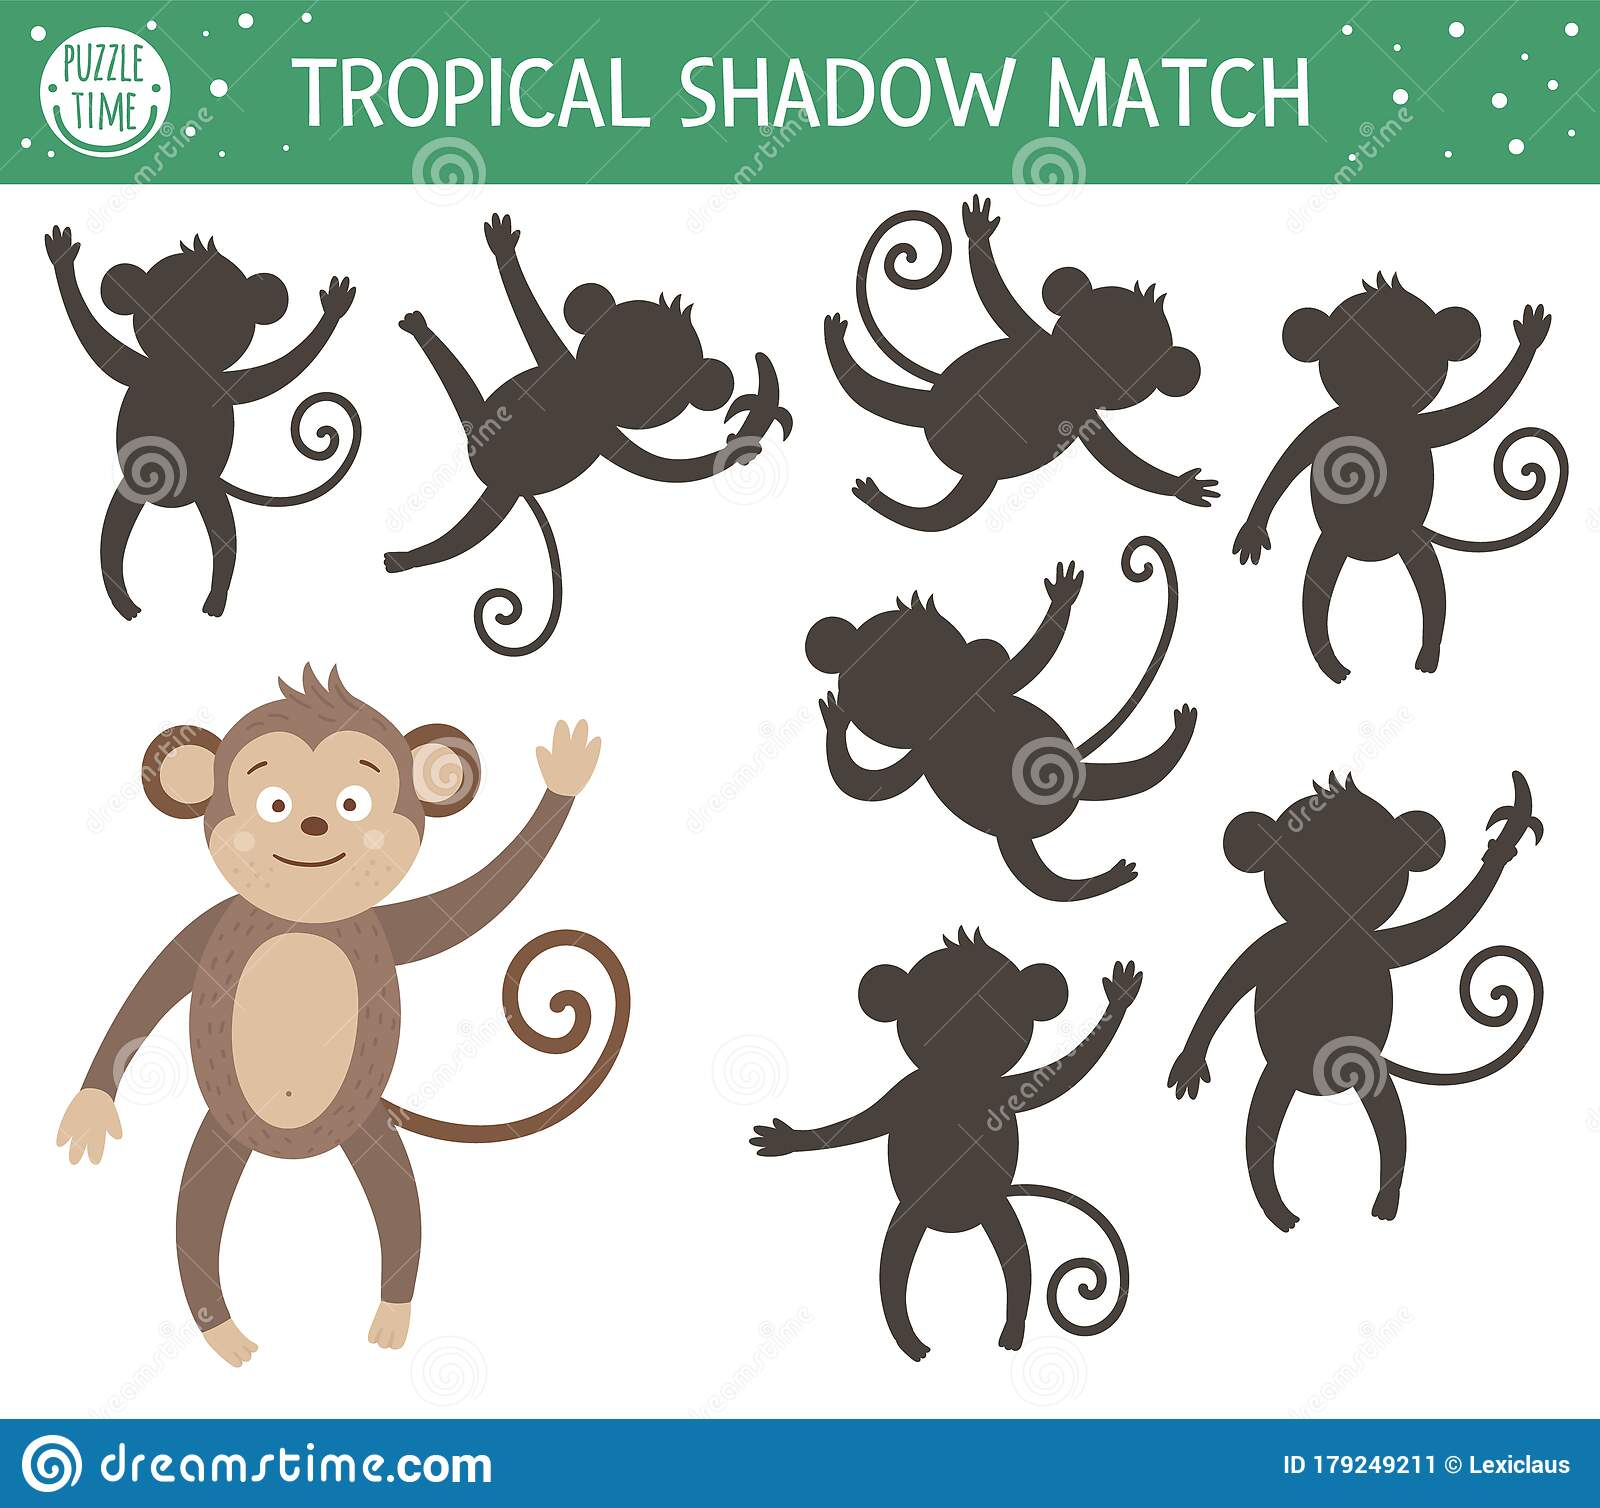 Tropical Shadow Matching Activity For Children Preschool